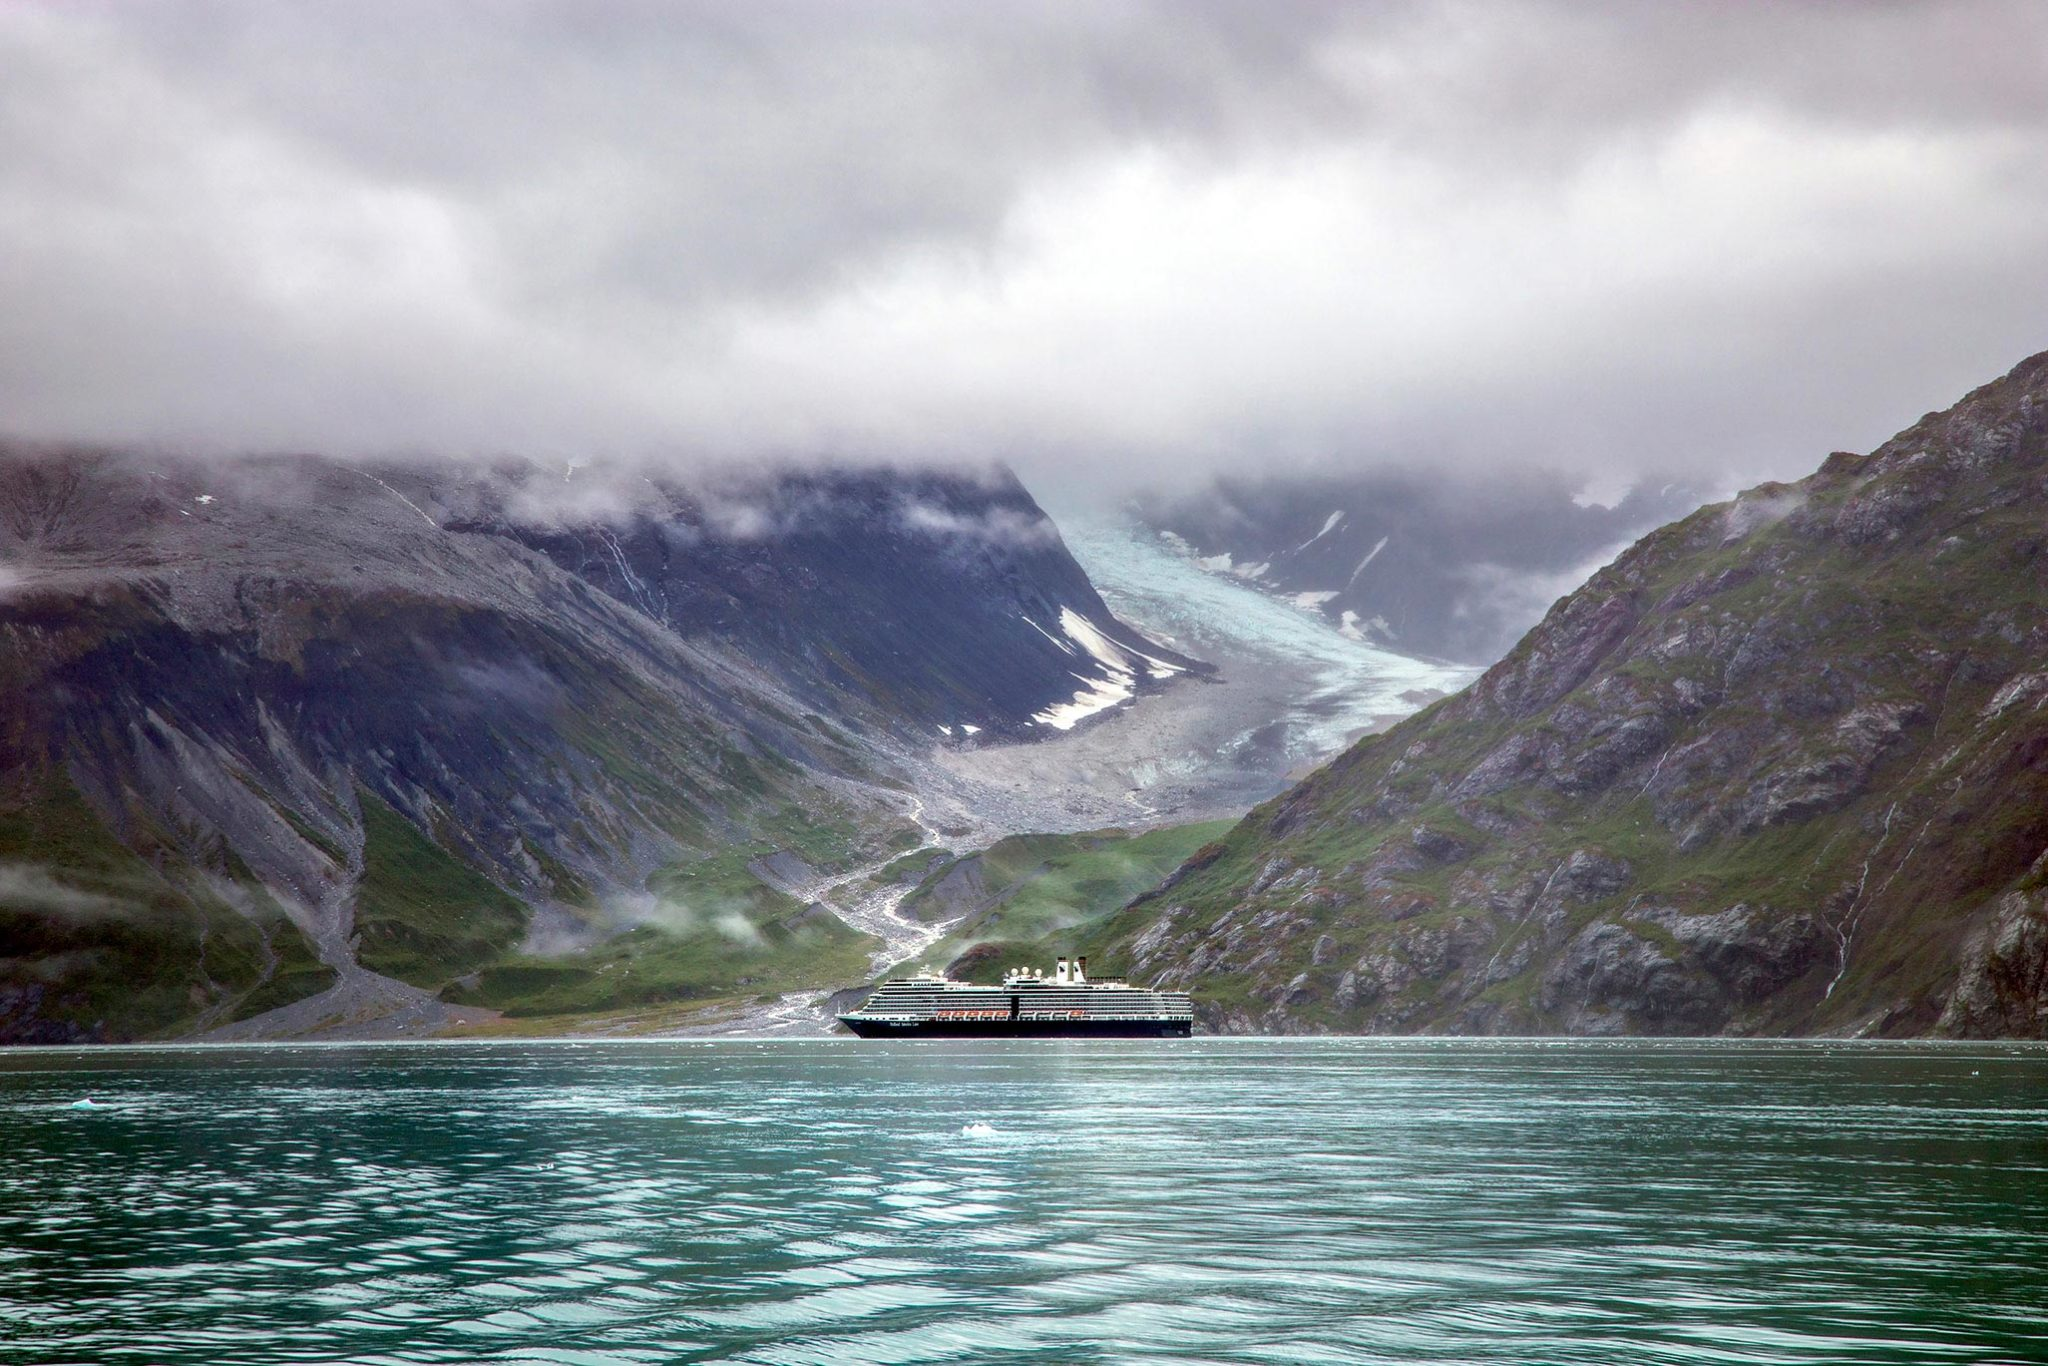 Large vessel with glacier in the background